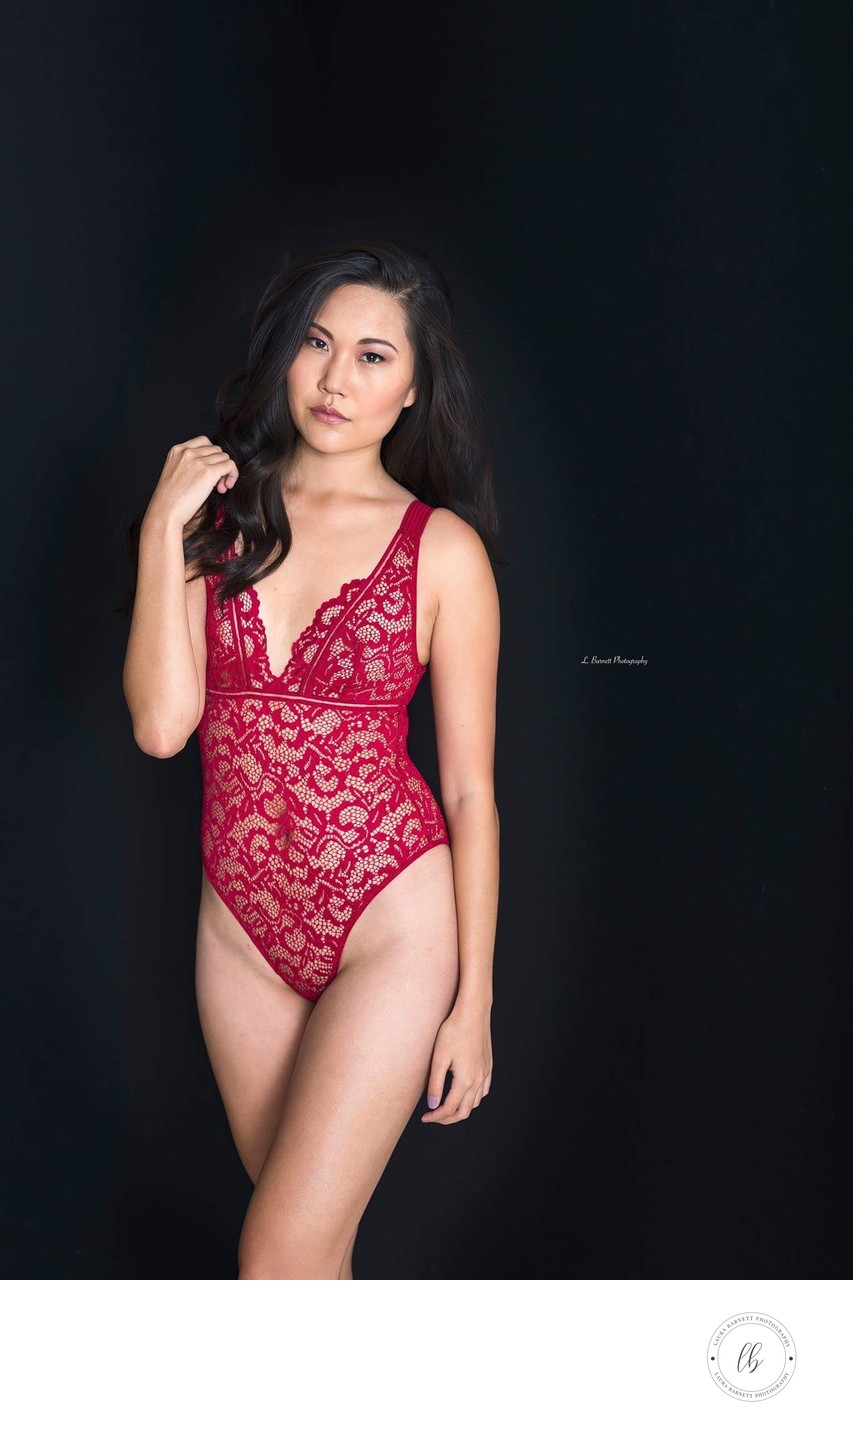 Las Vegas Photographer portrait Asian boudoir